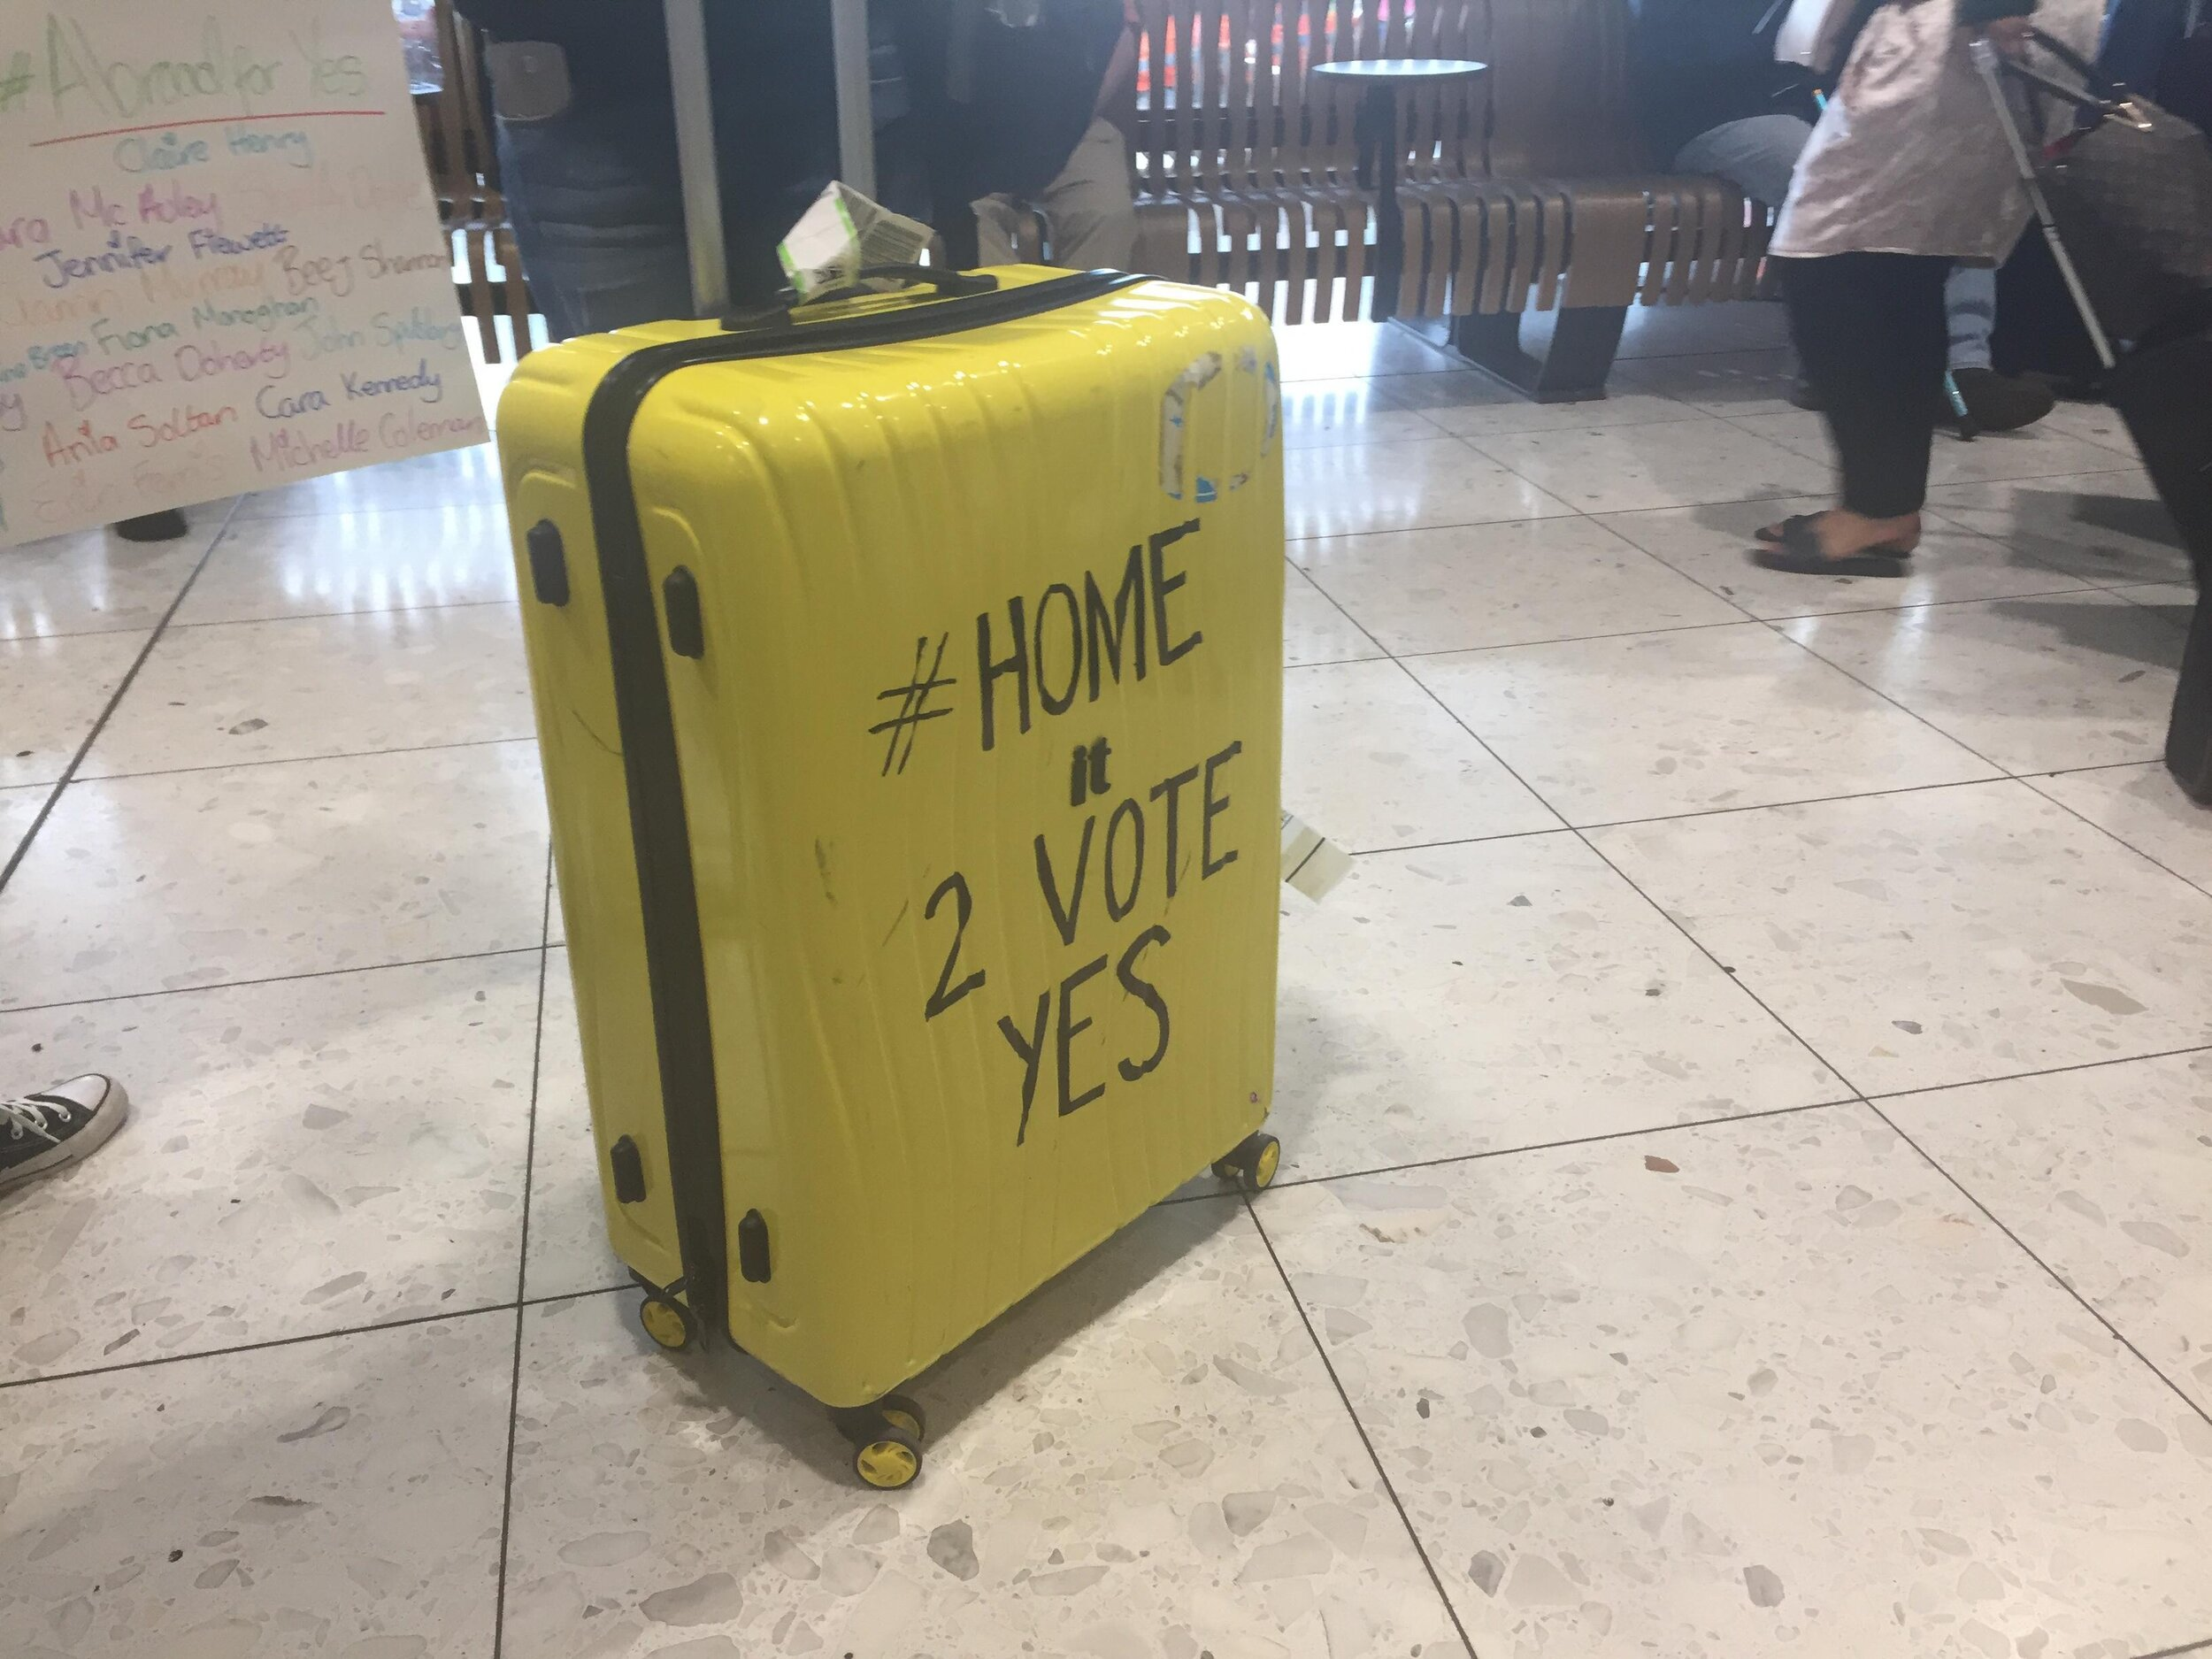 Many expats travelled to Ireland to have their say in the same-sex marriage and abortion referenda even though, as non-residents, they are officially denied a vote.